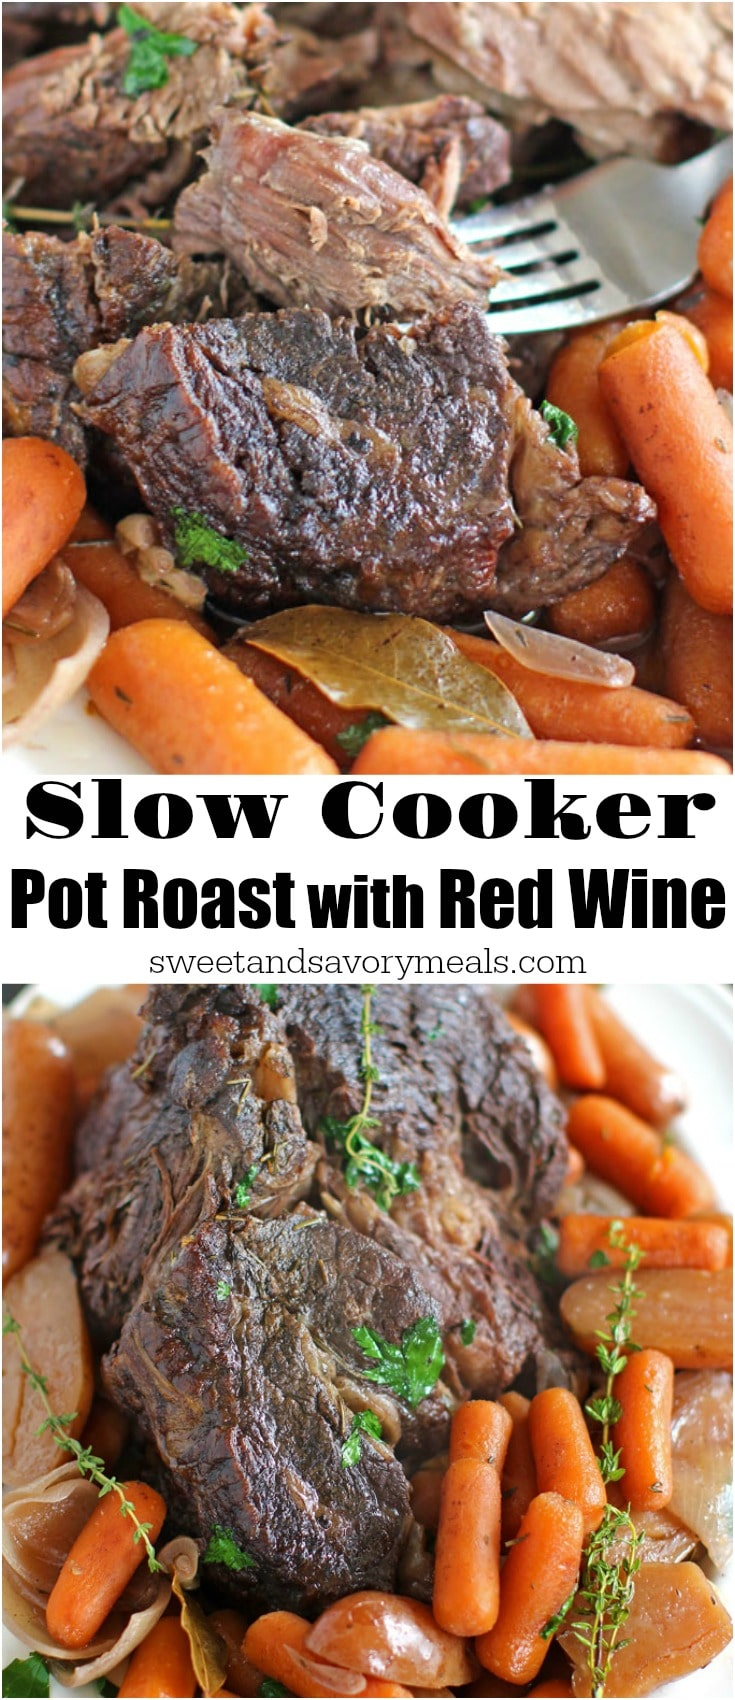 Slow Cooker Pot Roast made with red wine is such an easy and delicious meal, hearty and packed with meat and veggies it is perfect for any occasion.